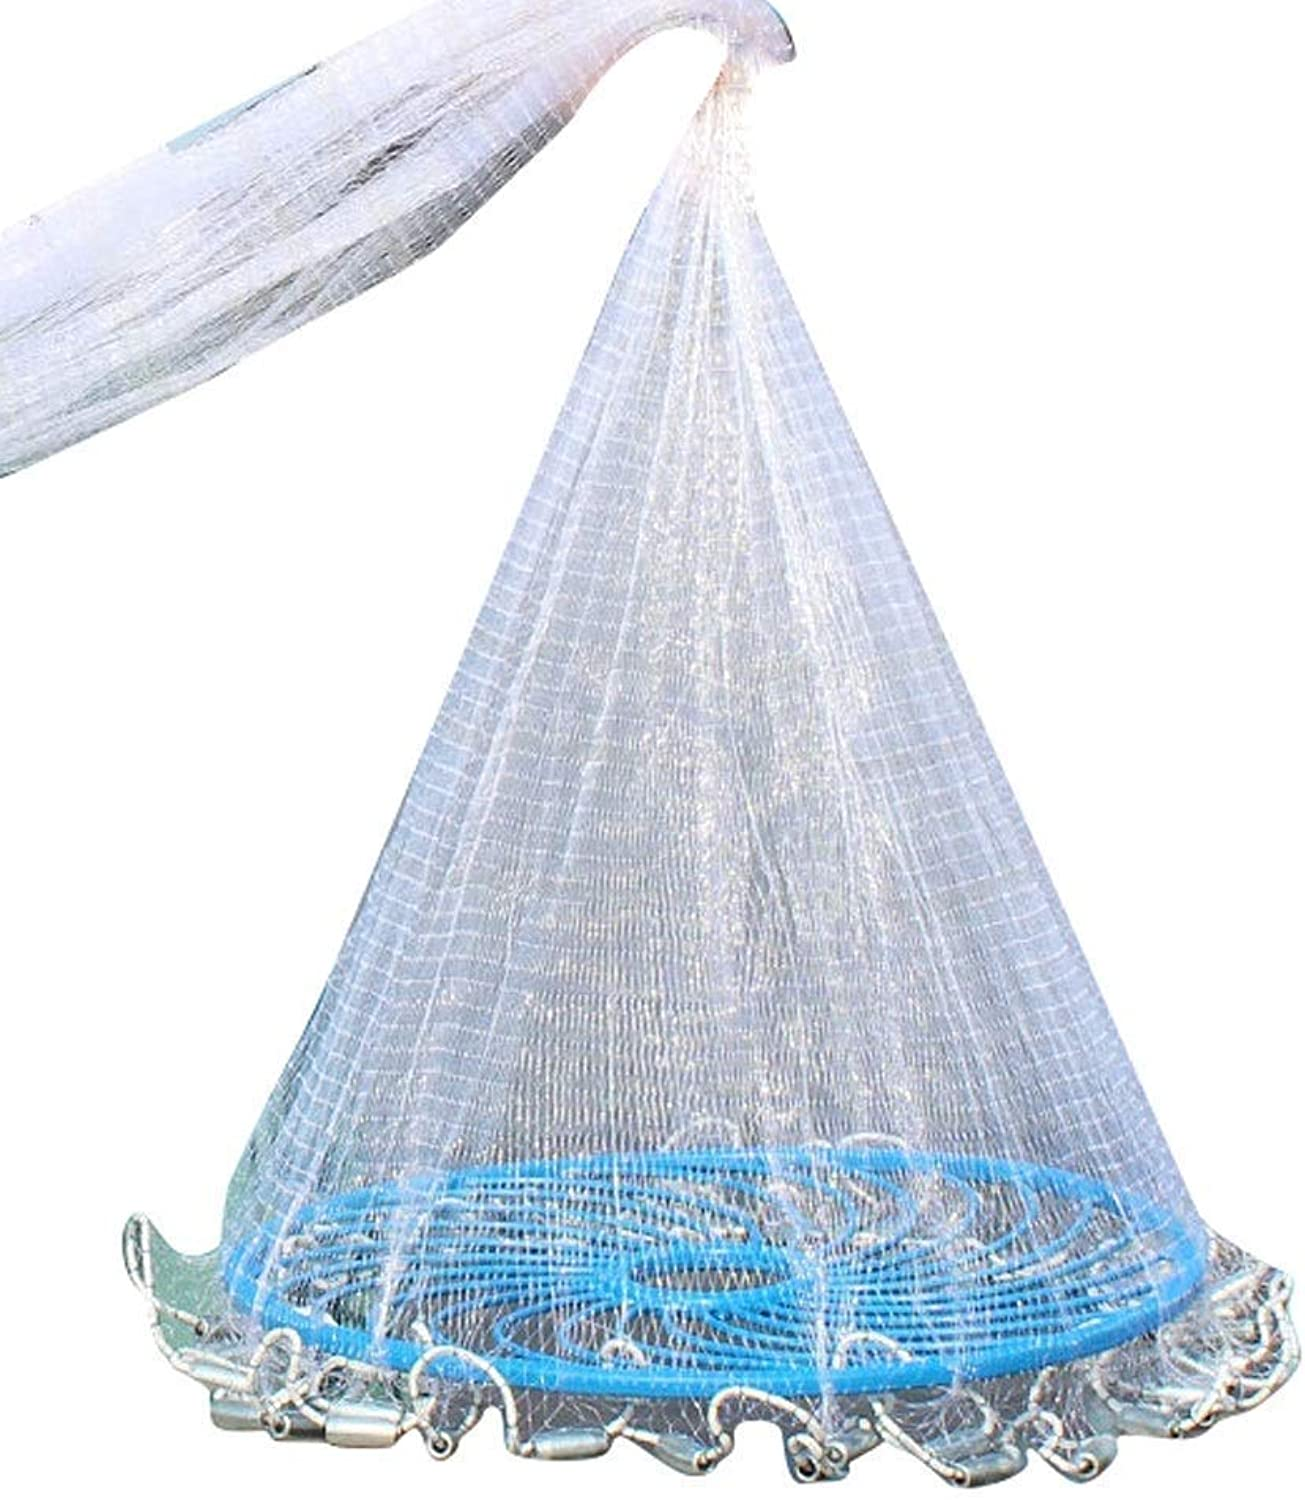 Fishing Nets Round Discs Hand Nets Throwing Autoredating Nets Outdoor Pond Baits Easy to Operate Portable Fishing Tool Multiple Sizes (Material   Galvanized Pendant, Size   Height 2.7m)